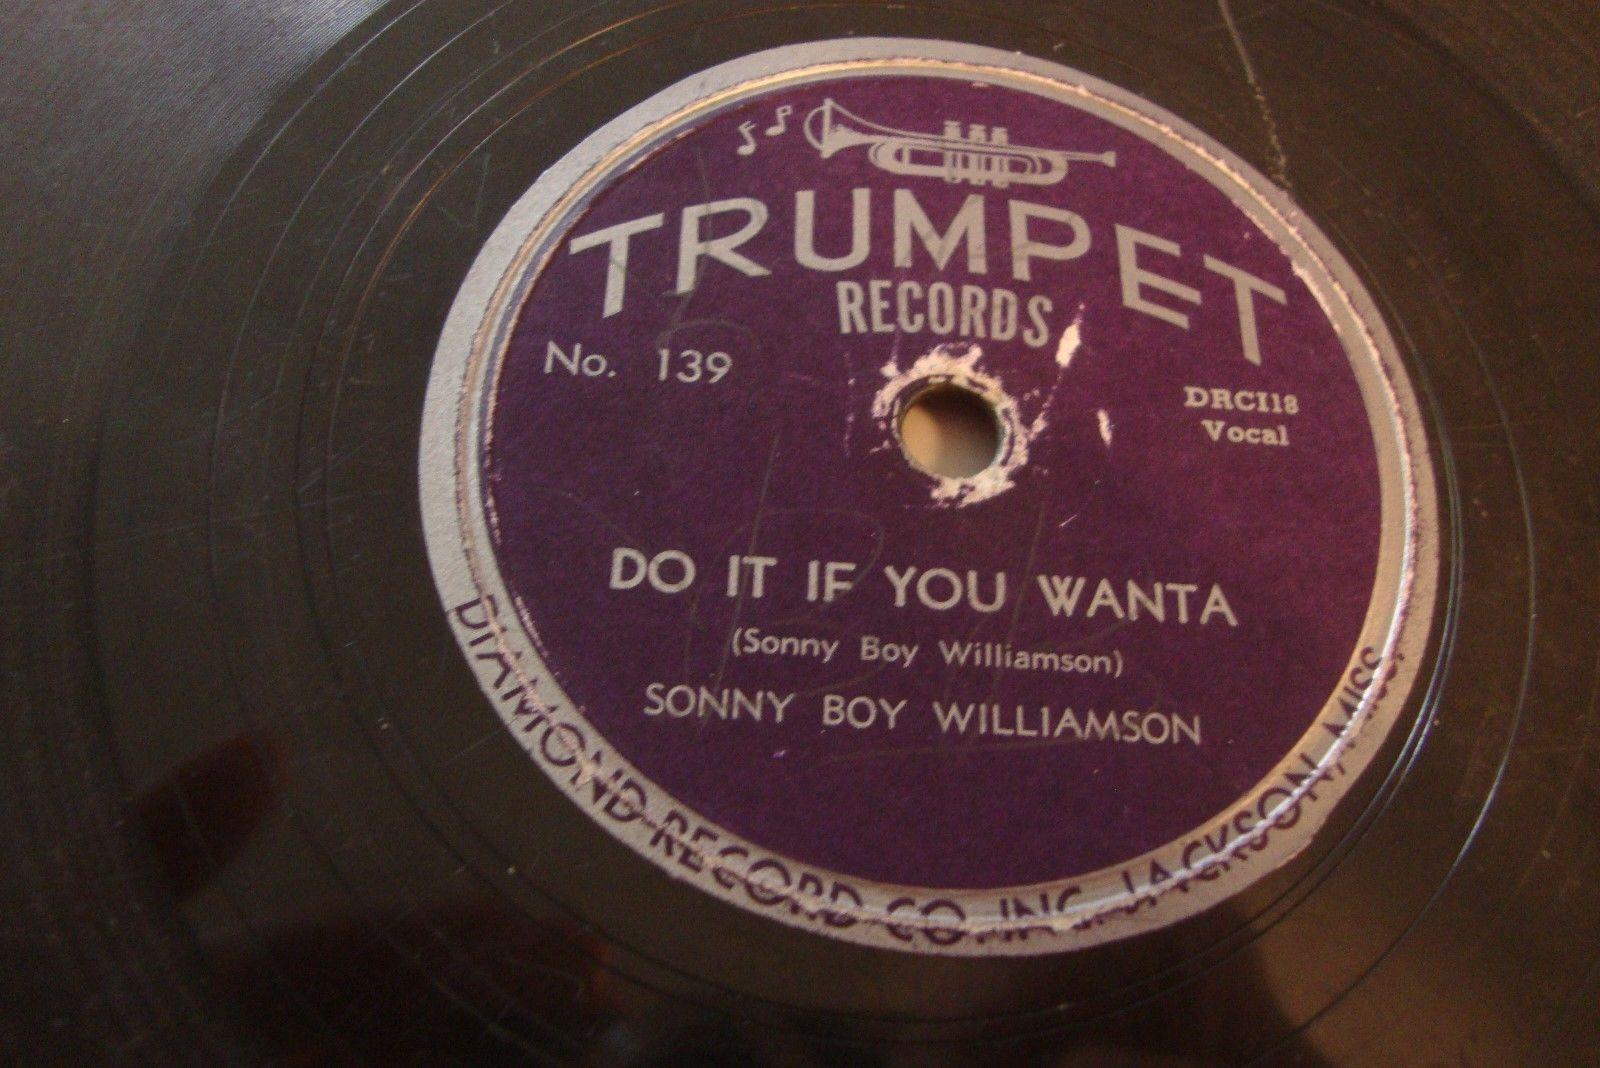 SONNY BOY WILLIAMSON - TRUMPET 78 RPM - DO IT IF YOU WANTA/ COOL COOL BLUES-HEAR